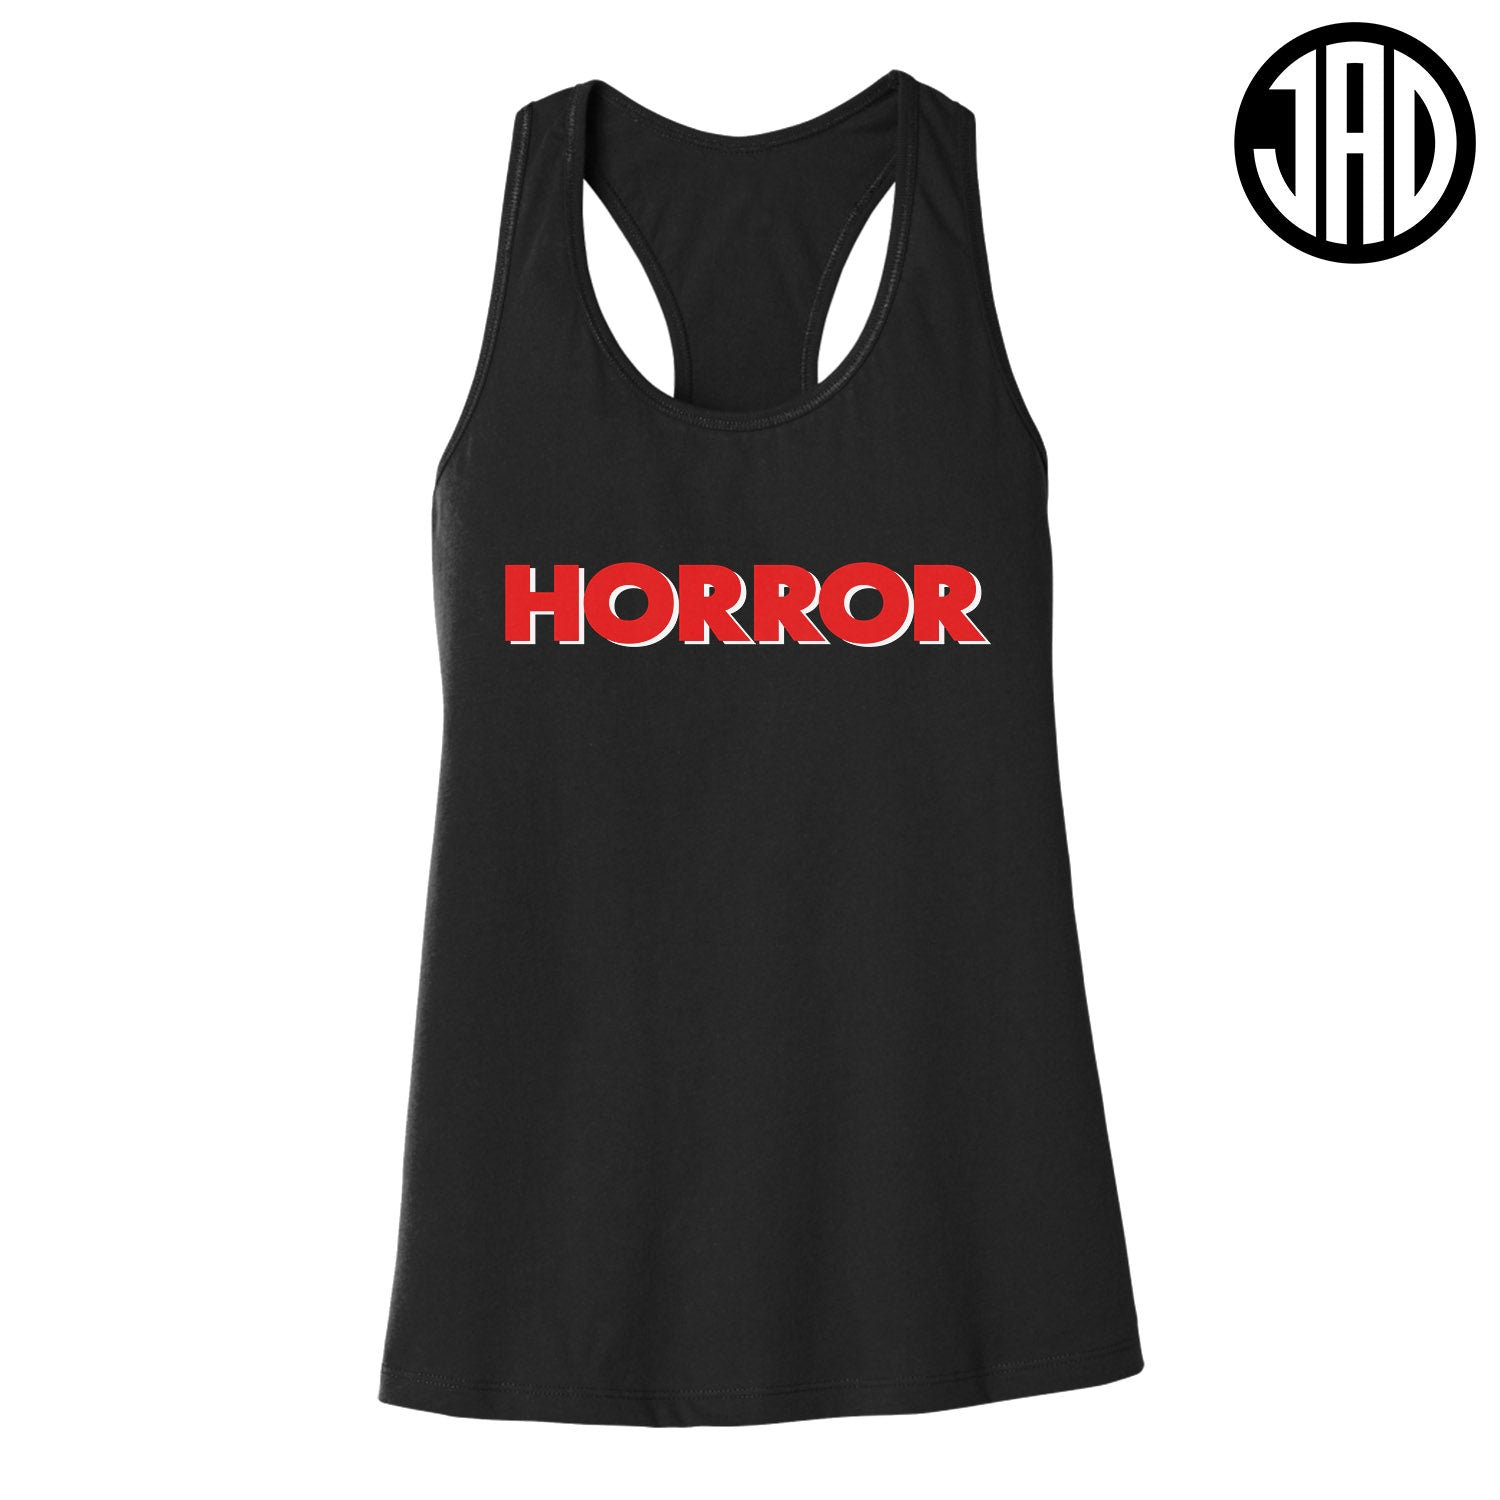 Horror High - Women's Racerback Tank